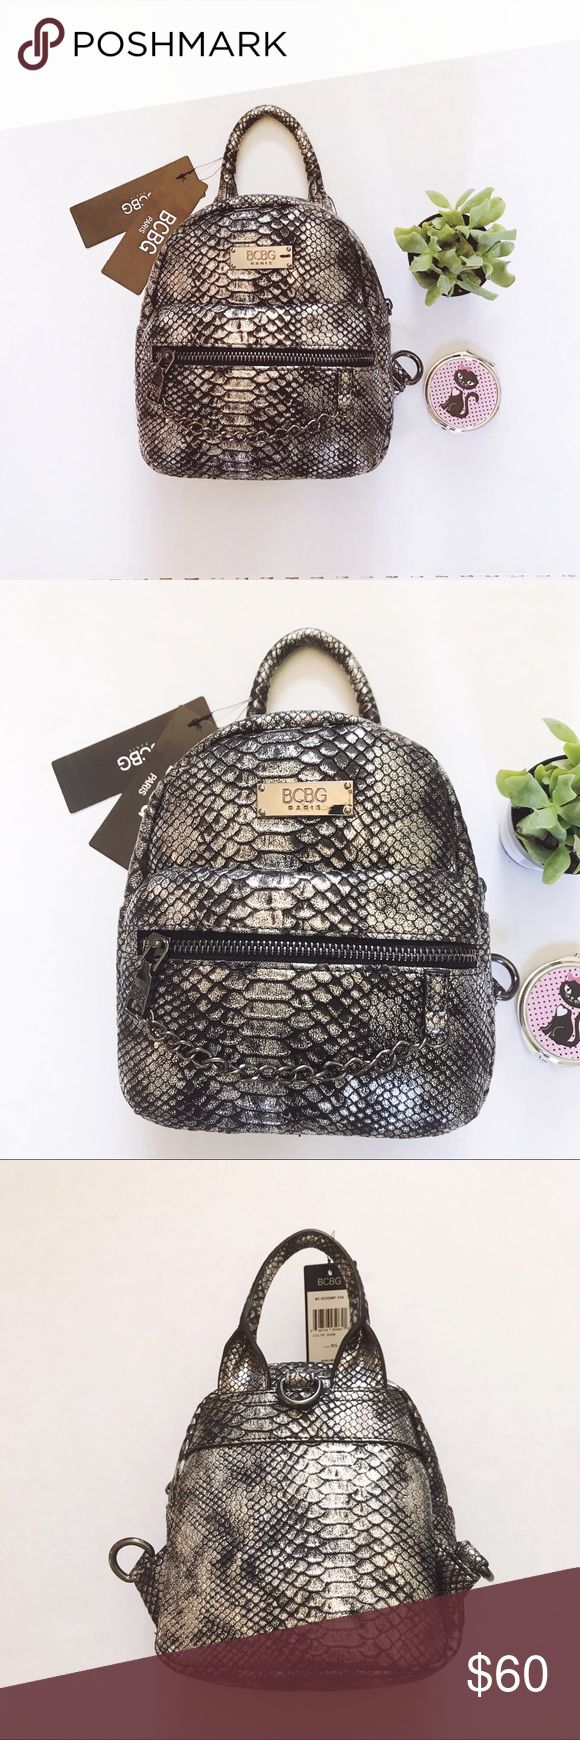 """✨NWT✨ BCBG Paris Main St Petite Backpack in Silver Chic and trendy, this little backpack is perfect for any occasion. Features a short handle to carry with your hand or to keep it hands-free, hook the straps to carry it as a backpack. Front features a zip pocket with chain, inside has an open pocket (for cell phone). Measurements are approximately 8 x 8"""". New with tags, MSRP $125. BCBG Bags Backpacks"""